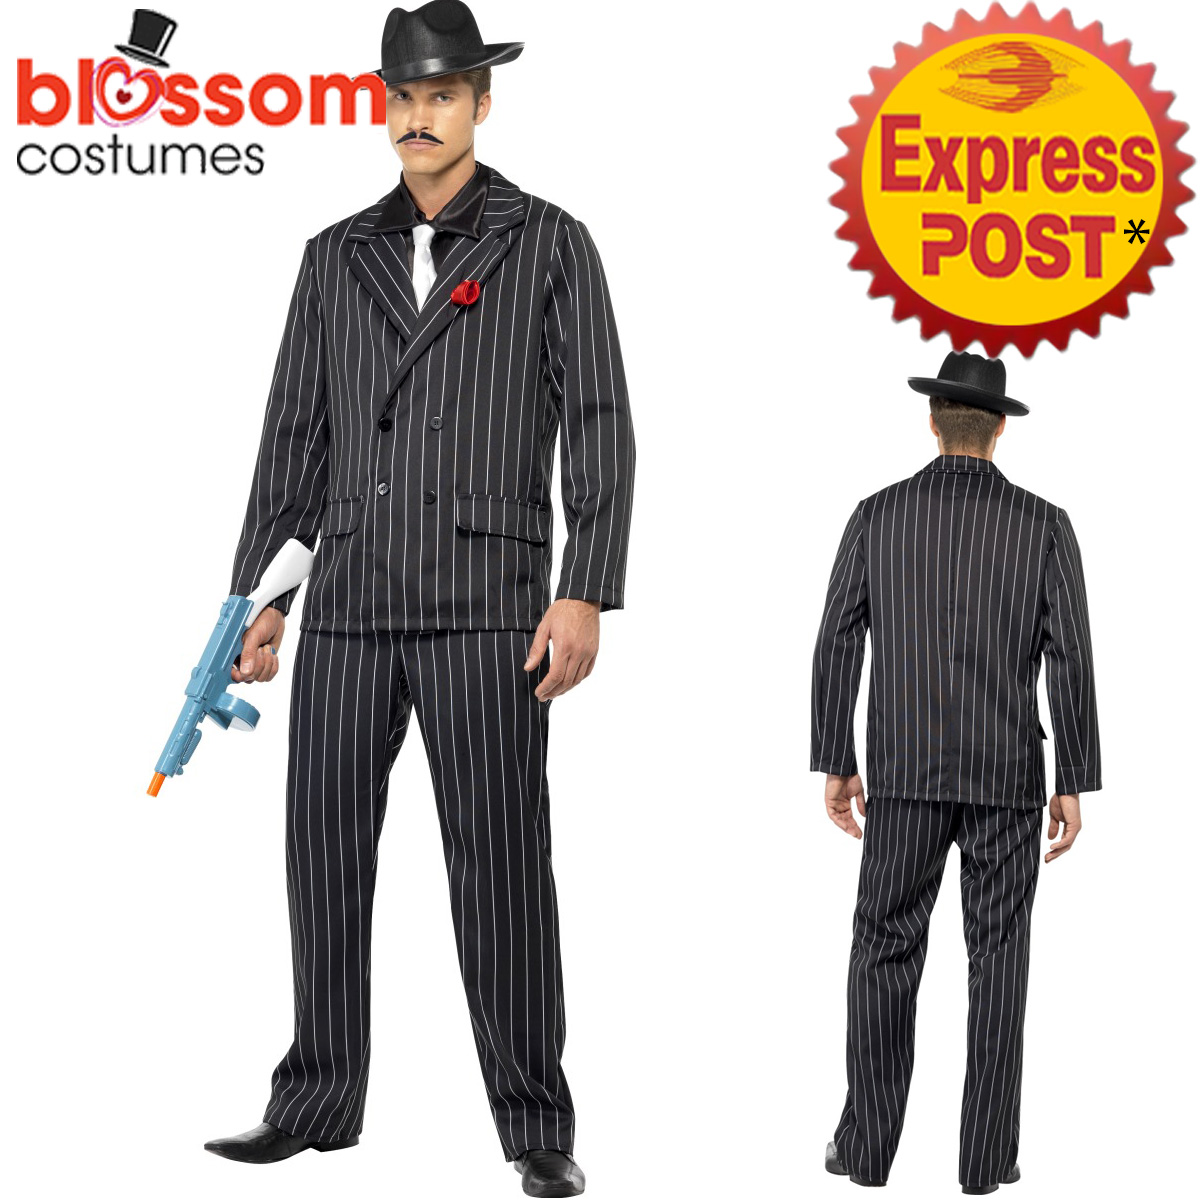 ca396 zoot suit gangster 1920s mens pinstripes gatsby 20s. Black Bedroom Furniture Sets. Home Design Ideas